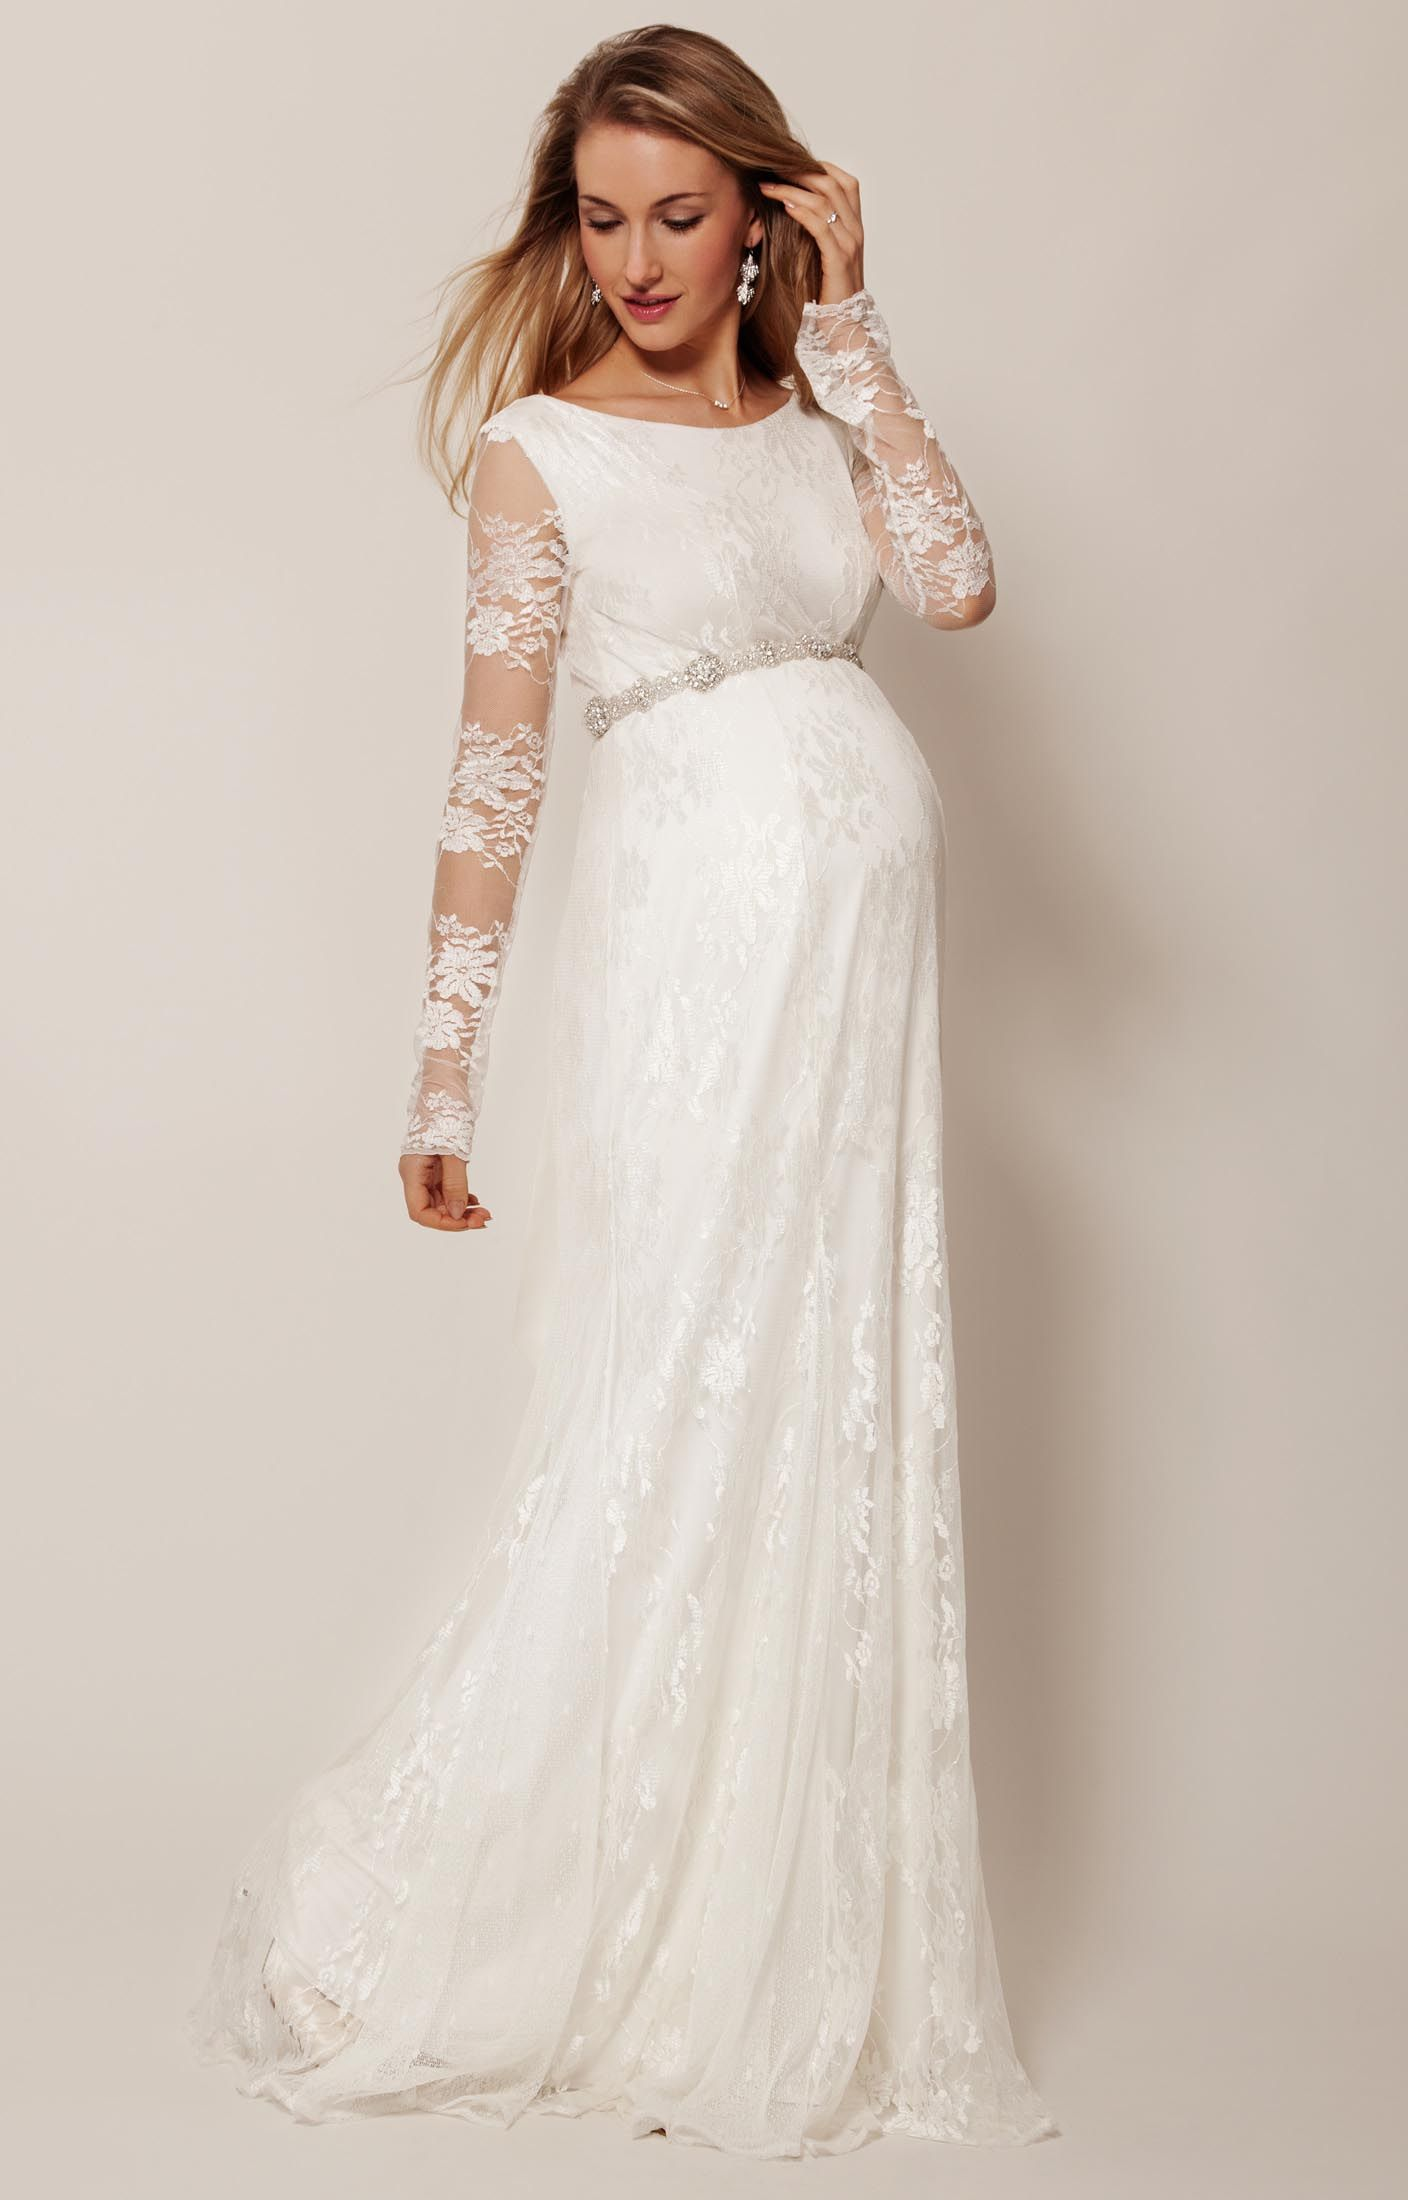 Helena gown long vintage inspired gowns and weddings vintage inspired helena full length maternity wedding gown has a gorgeous streamlined fishtail shape thats ombrellifo Image collections